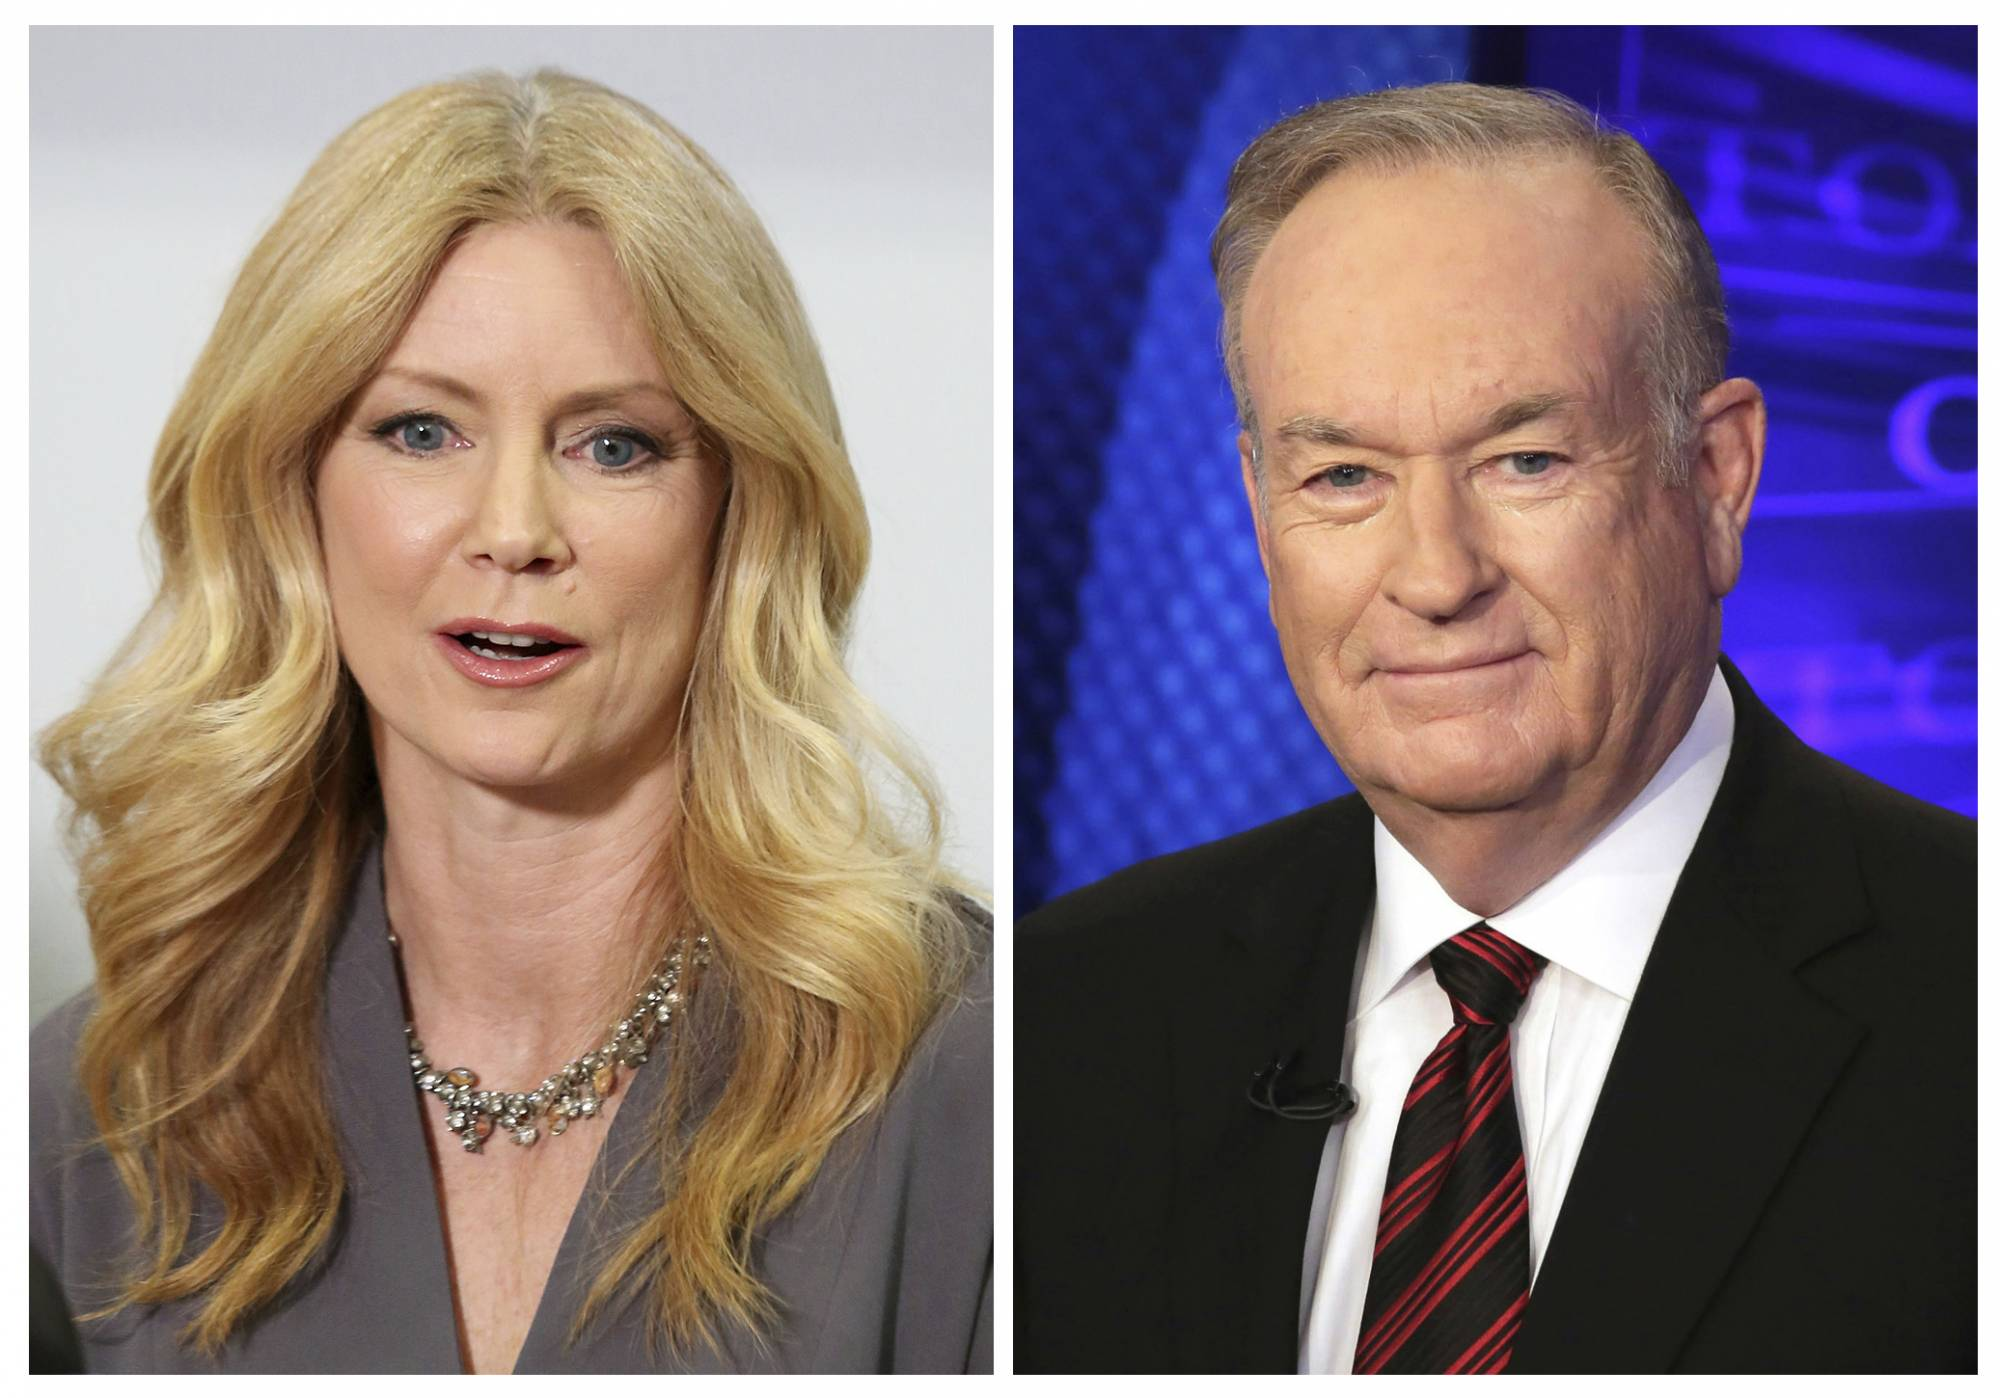 cbs46.com Bill O'Reilly, ex-Fox chief hit with more sexual allegations